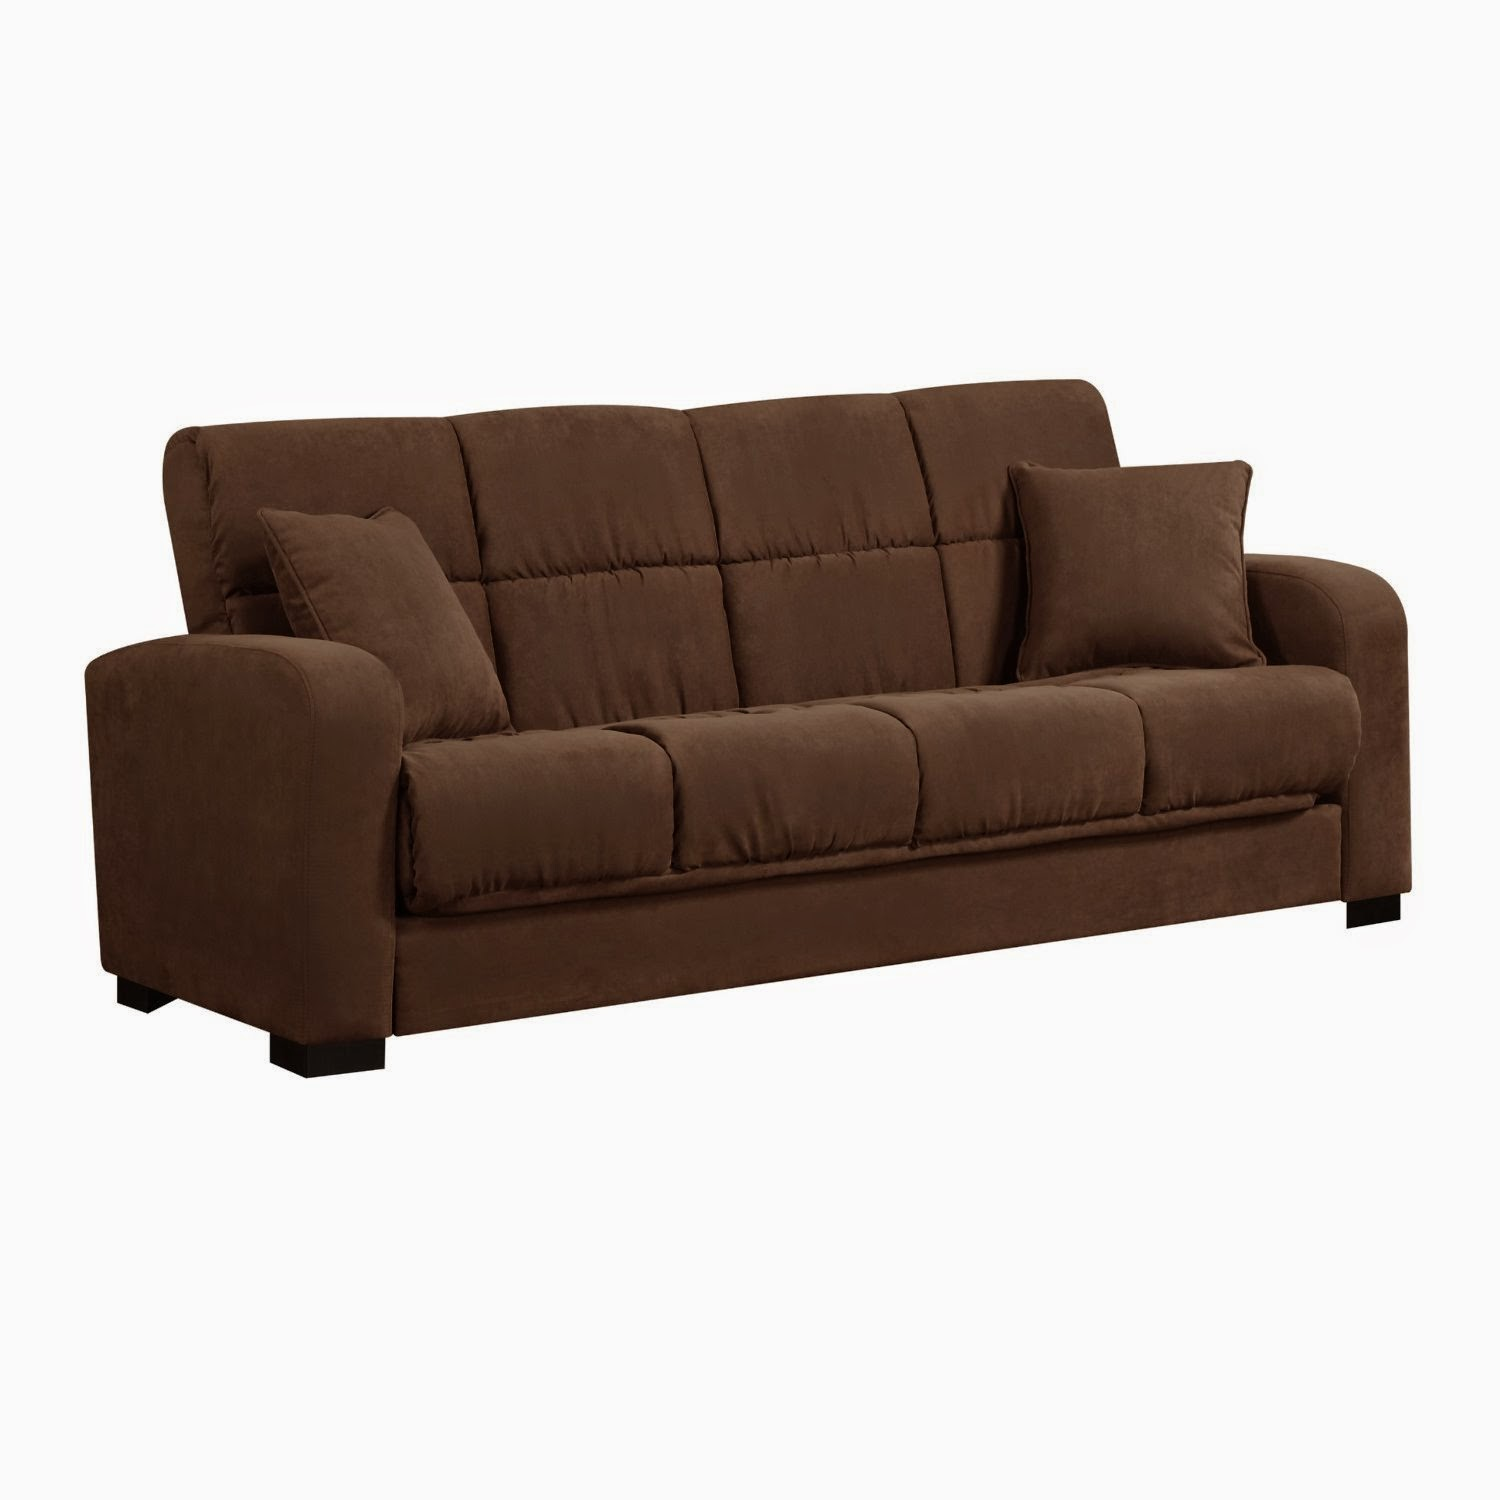 Leather Sectionals For Sale Sofa For Sale